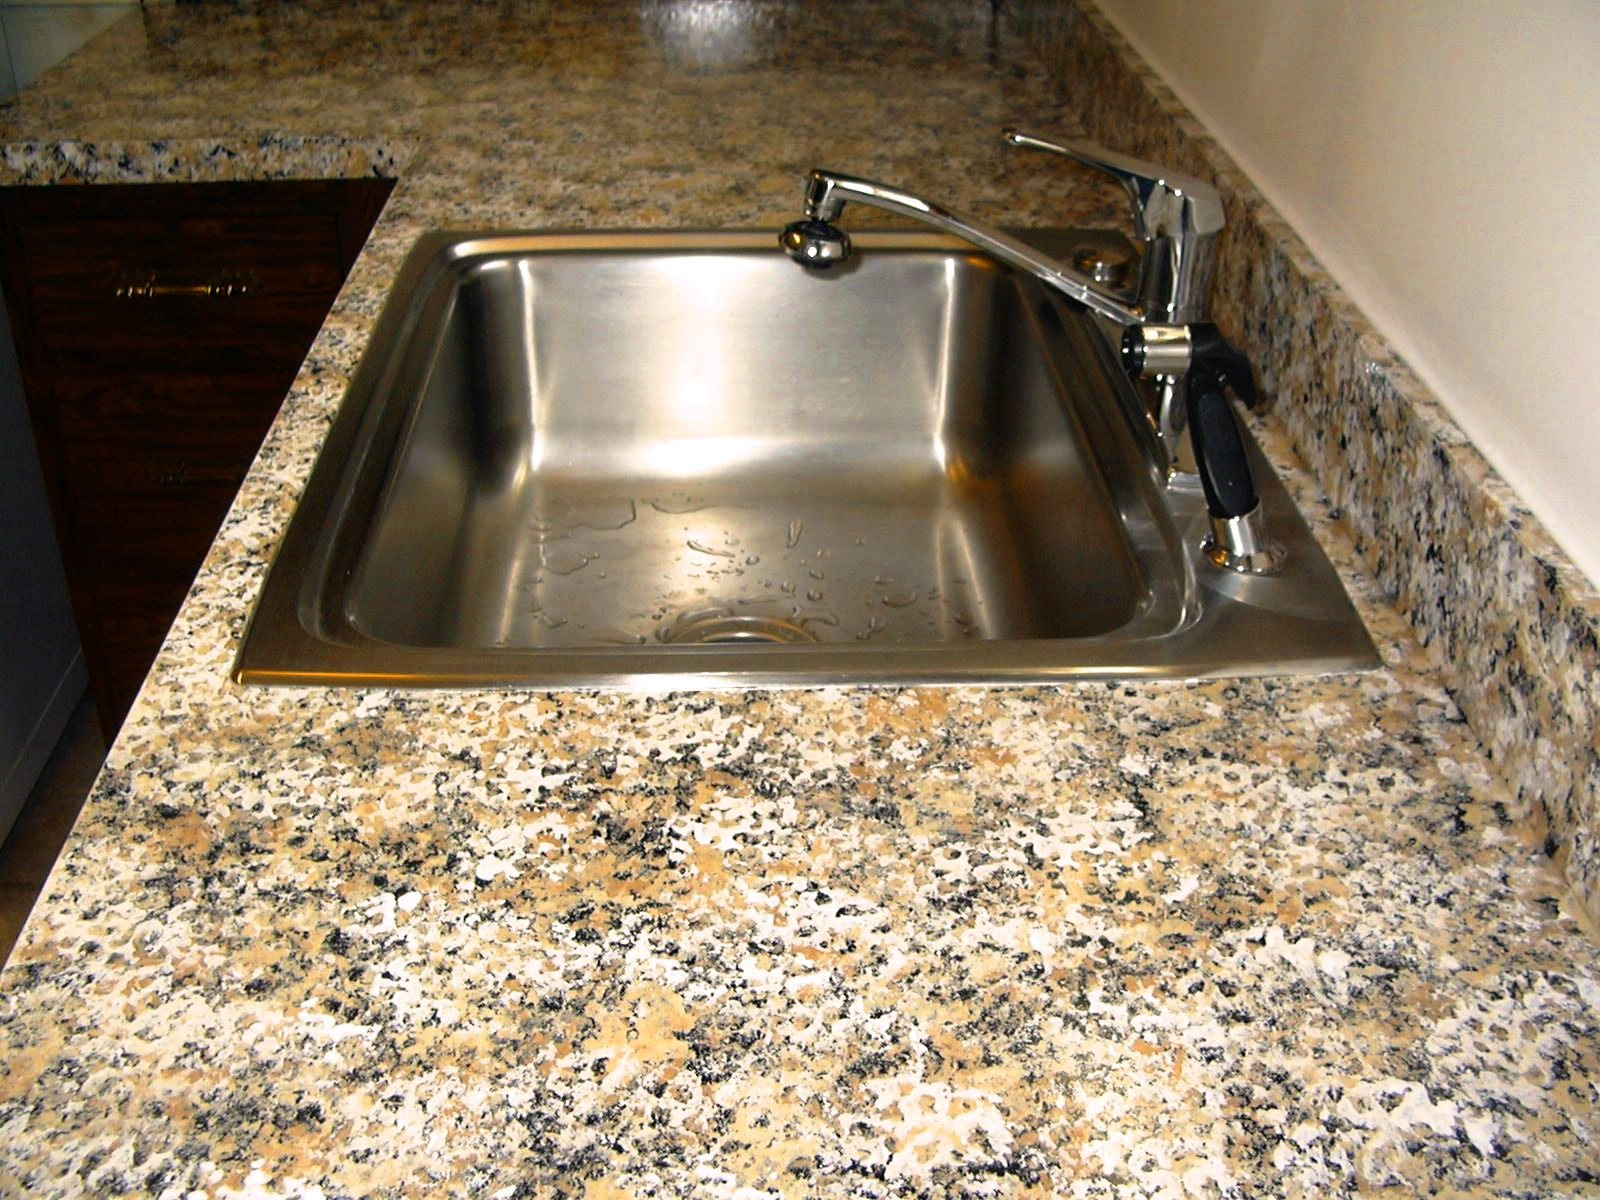 Granite Paint Kit For Countertops Ken Nect Our Experience With The Giani Granite Countertop